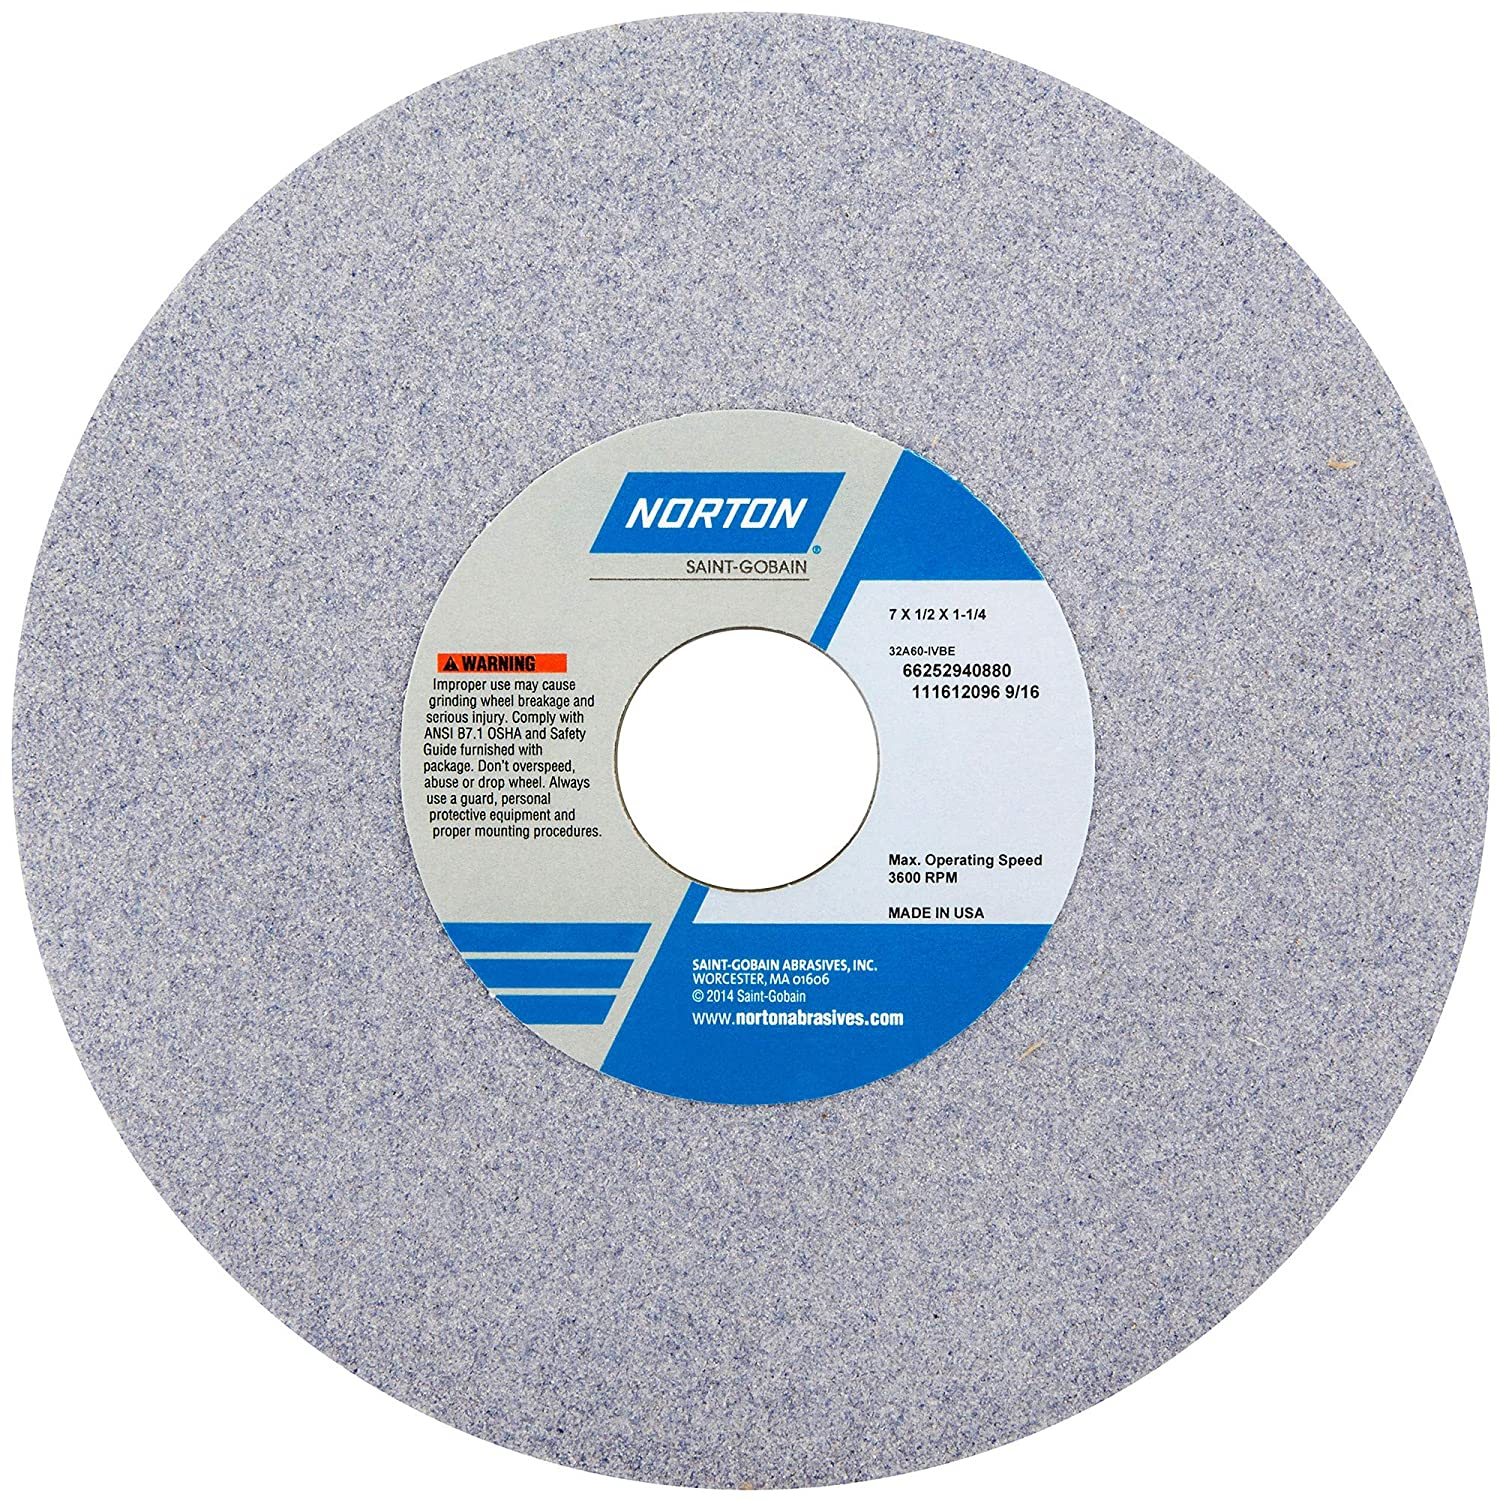 Norton 7 Dia 1//2 Thick 1-1//4 Hole Size 46 Grit 32A Aluminum Oxide J Hardness Type 1 Surface Grinding Wheel